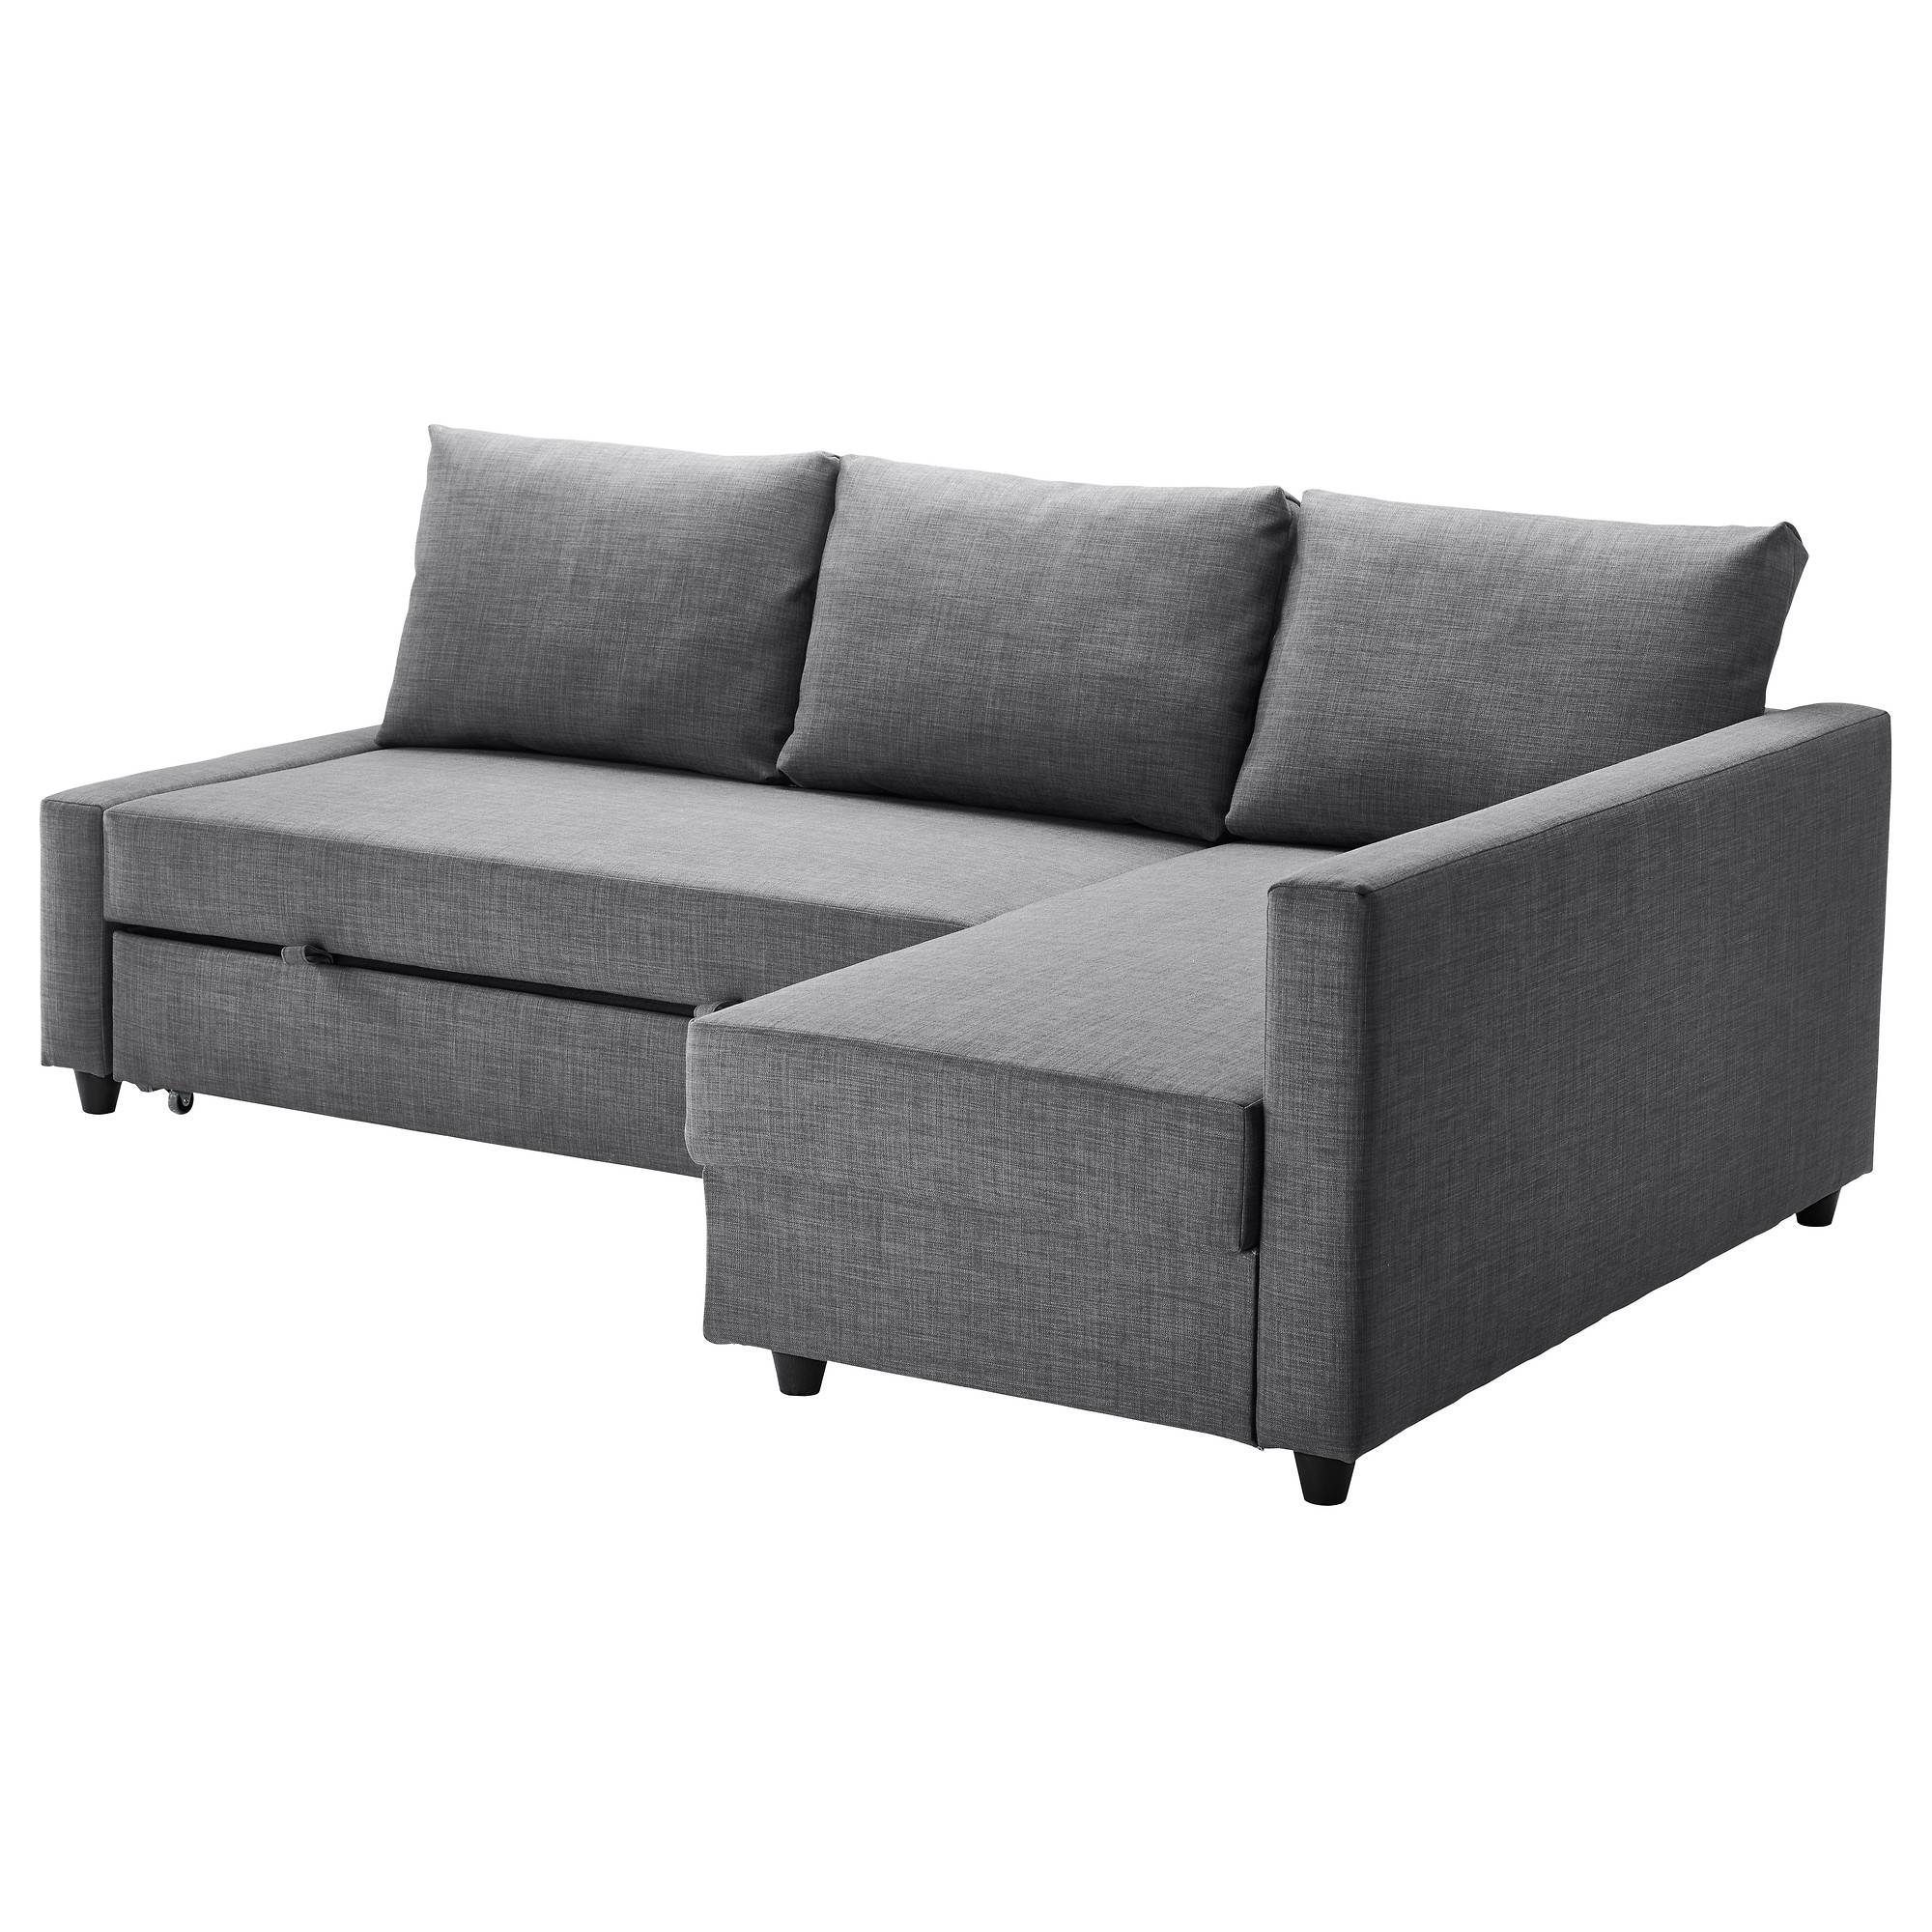 Sofa Beds & Futons - Ikea with Mini Sofa Beds (Image 26 of 30)